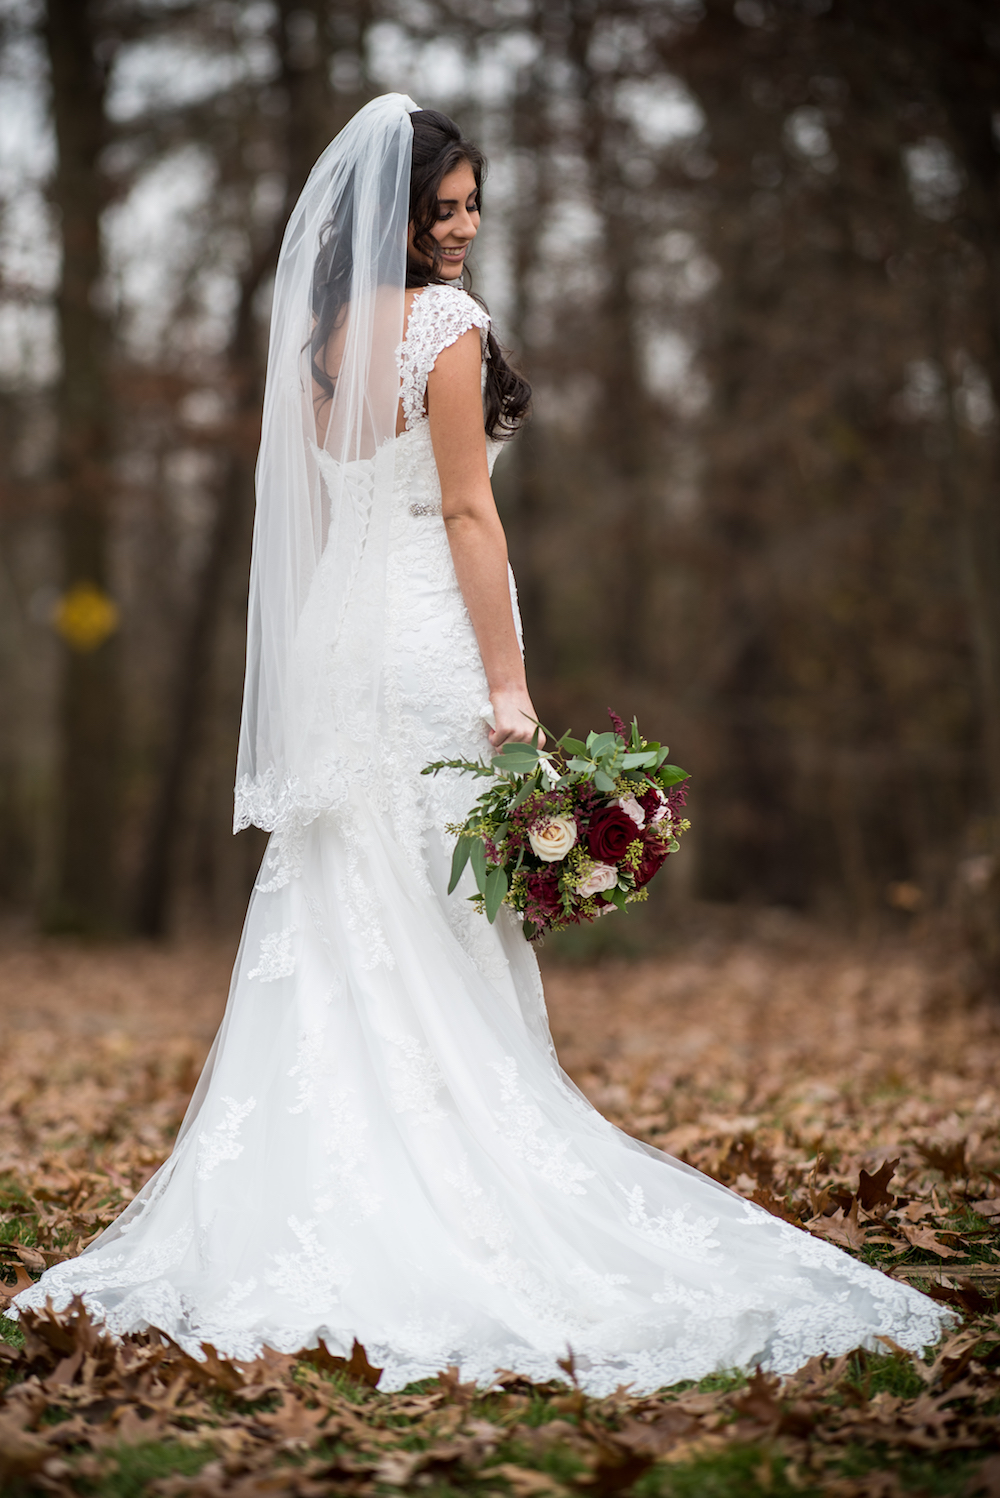 marissa-in-dress-holding-bouquet-wooded-area-wedding-photography-nj